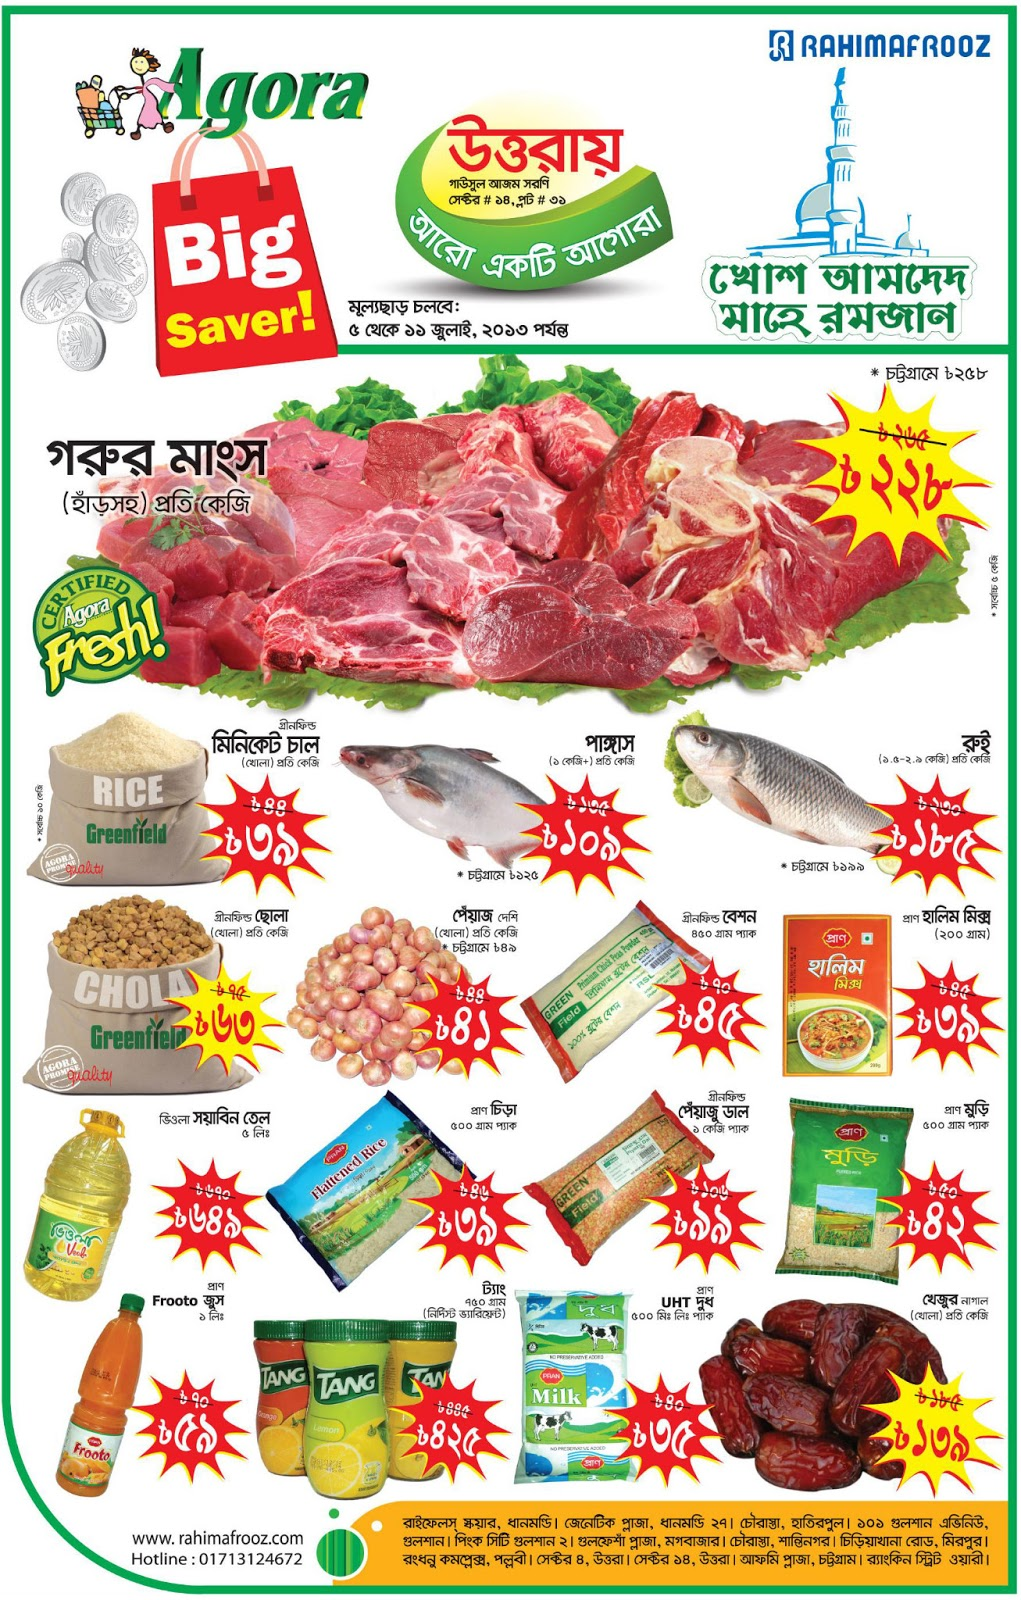 agora leading super shop in bangladesh Chain shop in bangladesh agora rahimafrooz list of some departmental stores address in bangladesh almas super shop- main branch.